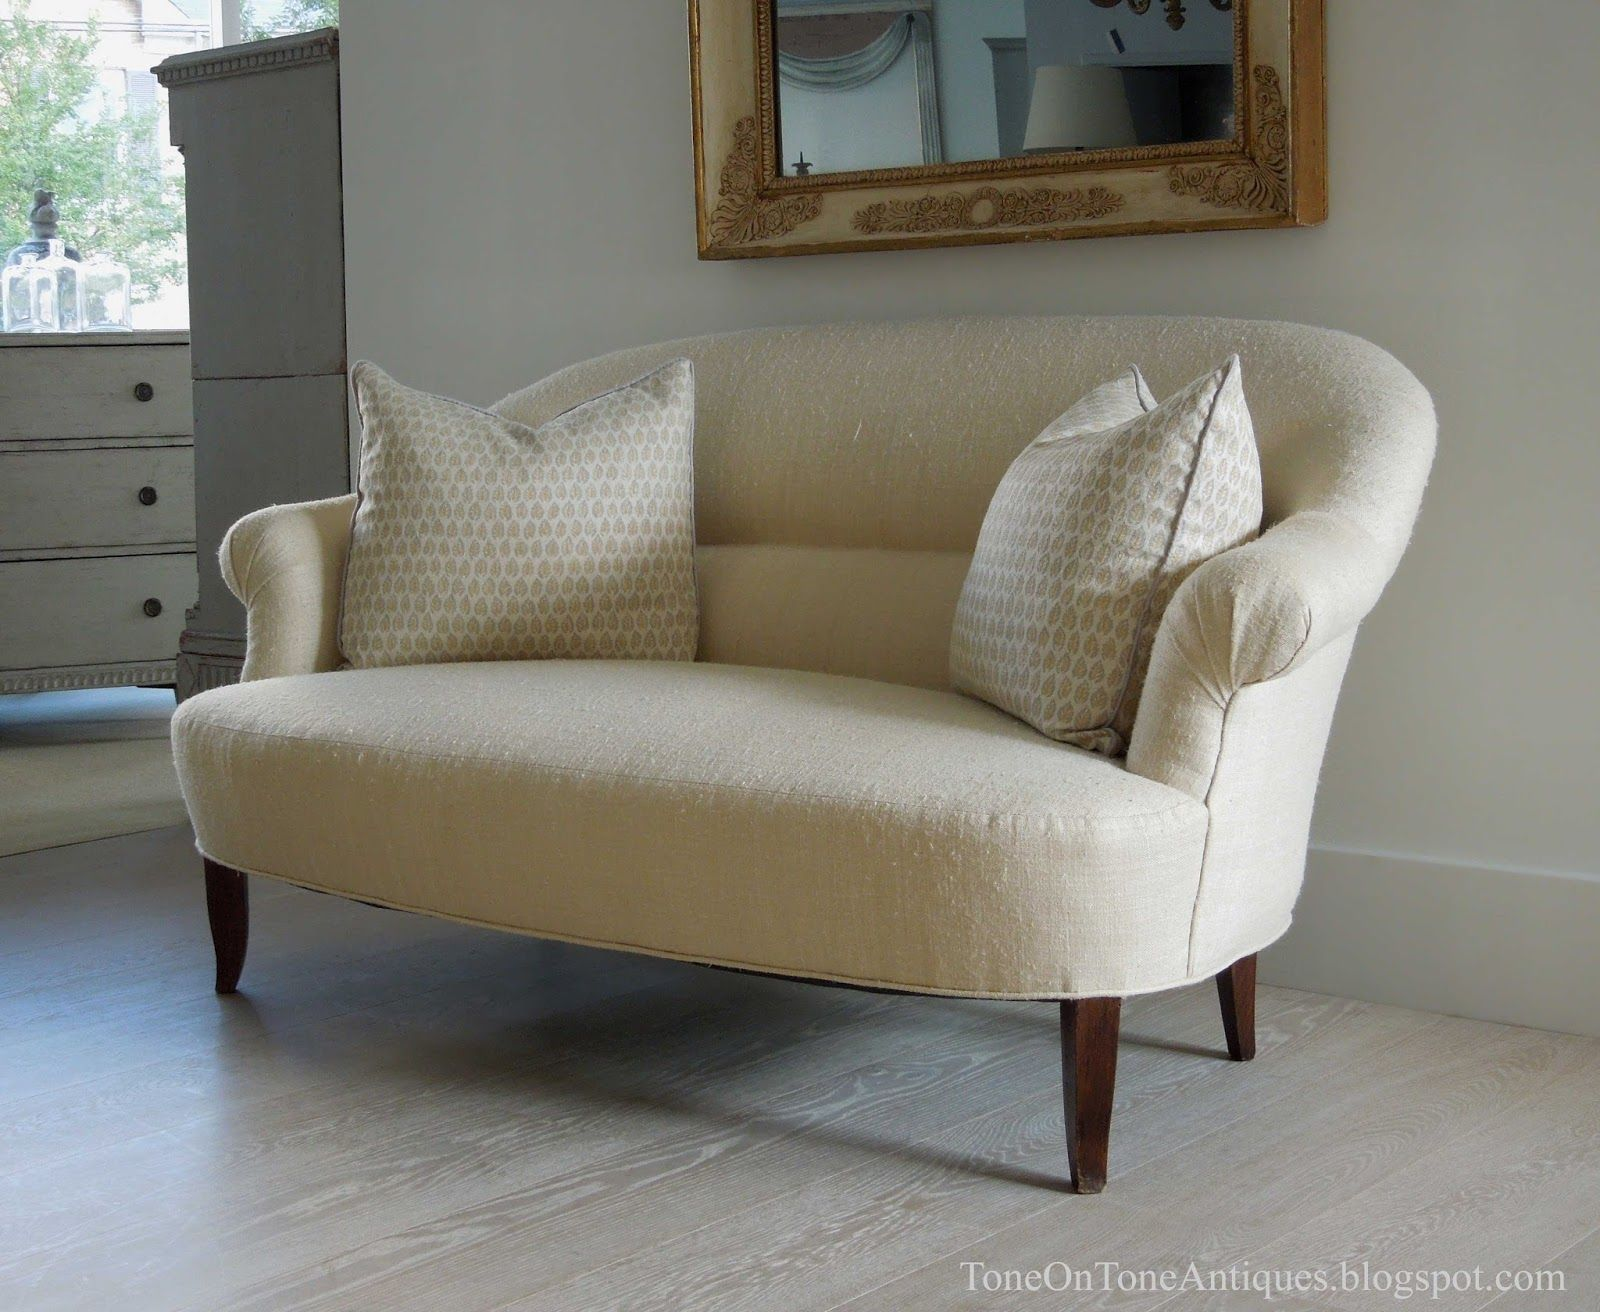 bleached antique french linen upholstery - Google Search